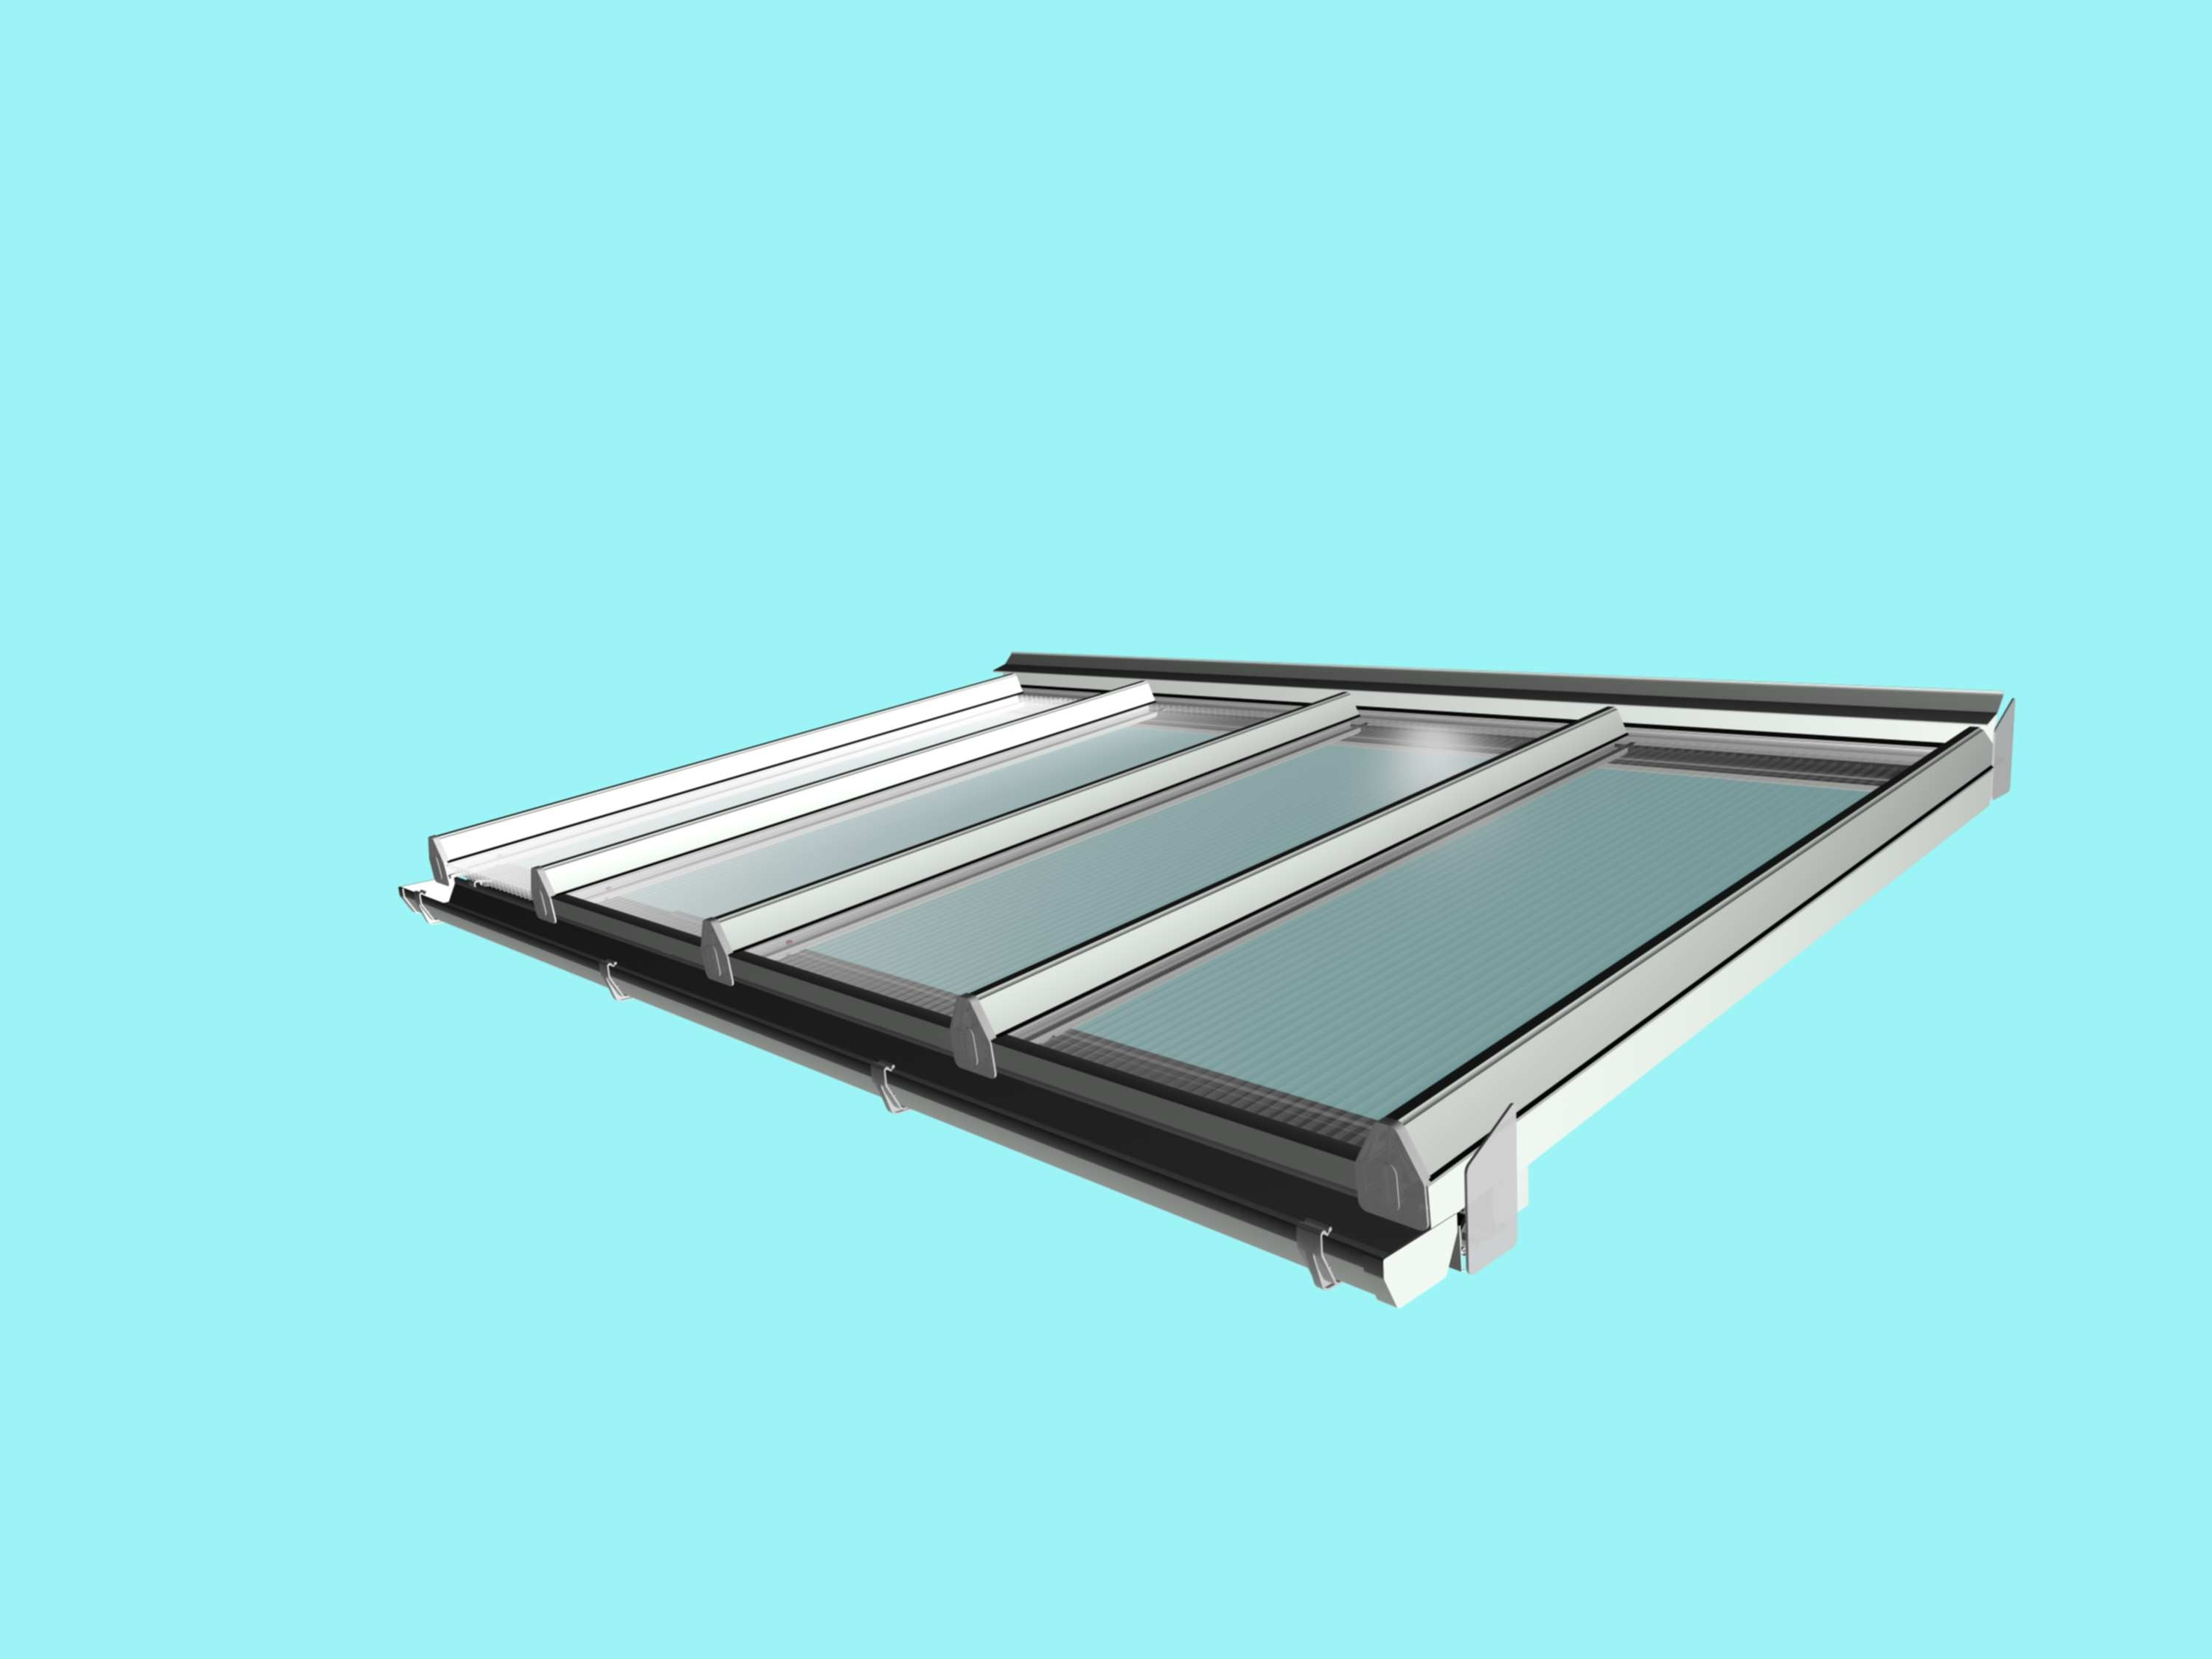 Self-Supporting DIY Conservatory Roof Kit for 16mm polycarbonate, 4.0m wide x 3.5m Projection from Omega Build